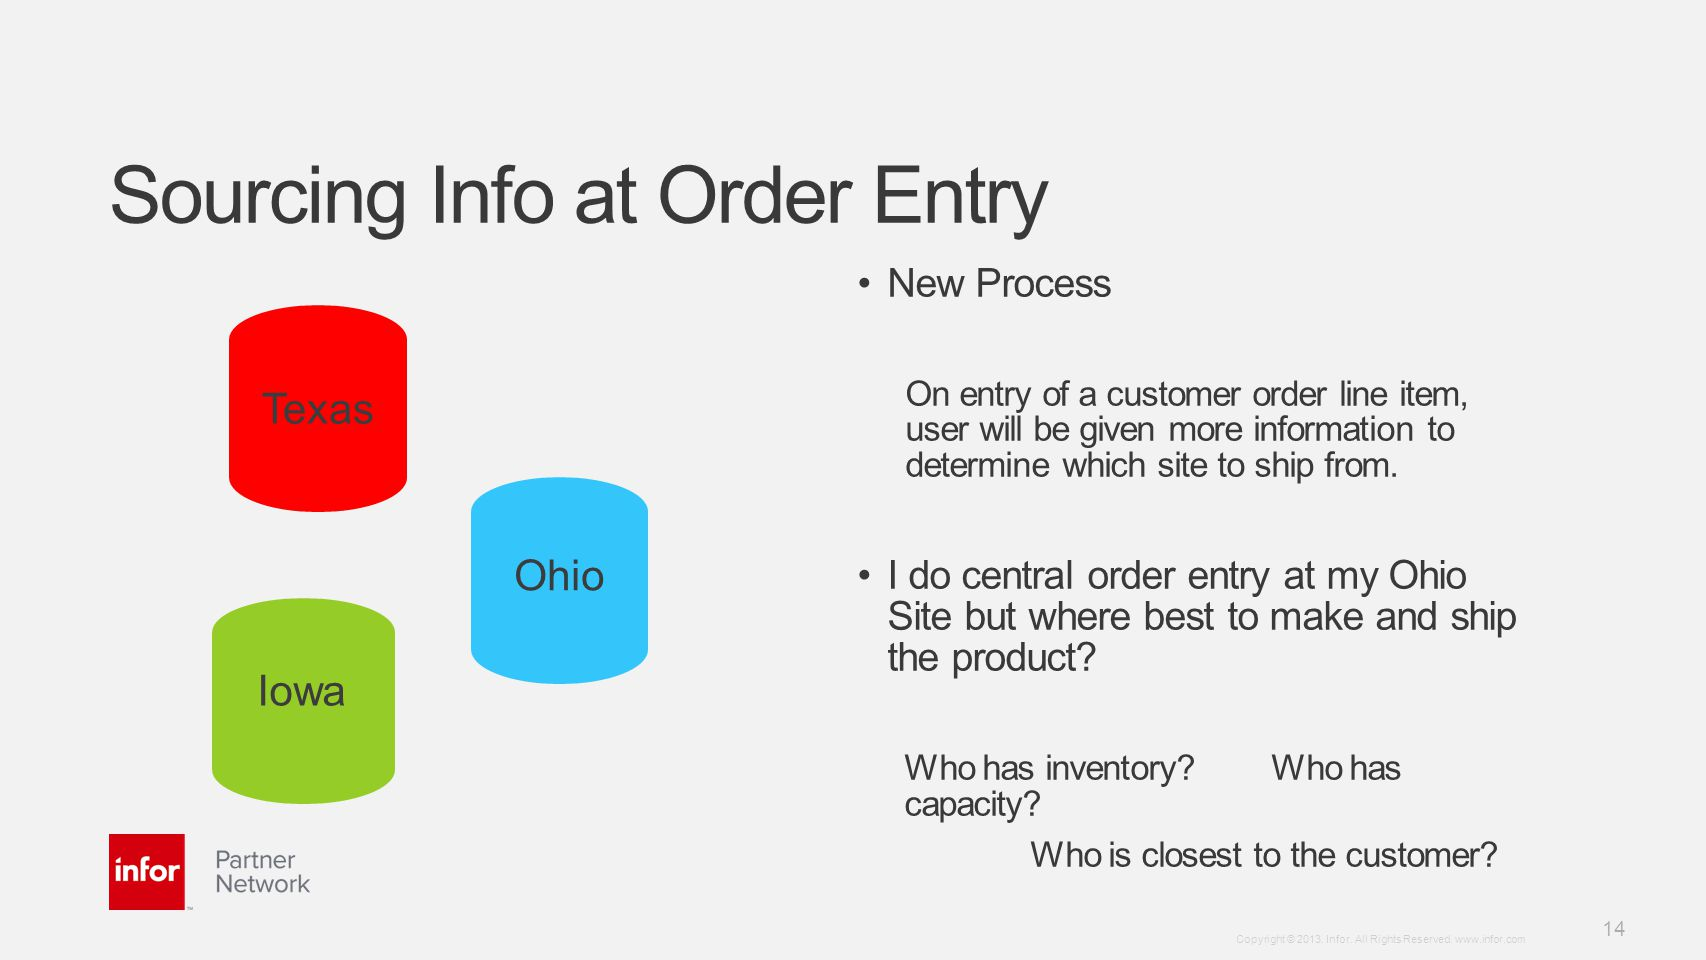 Sourcing Info at Order Entry